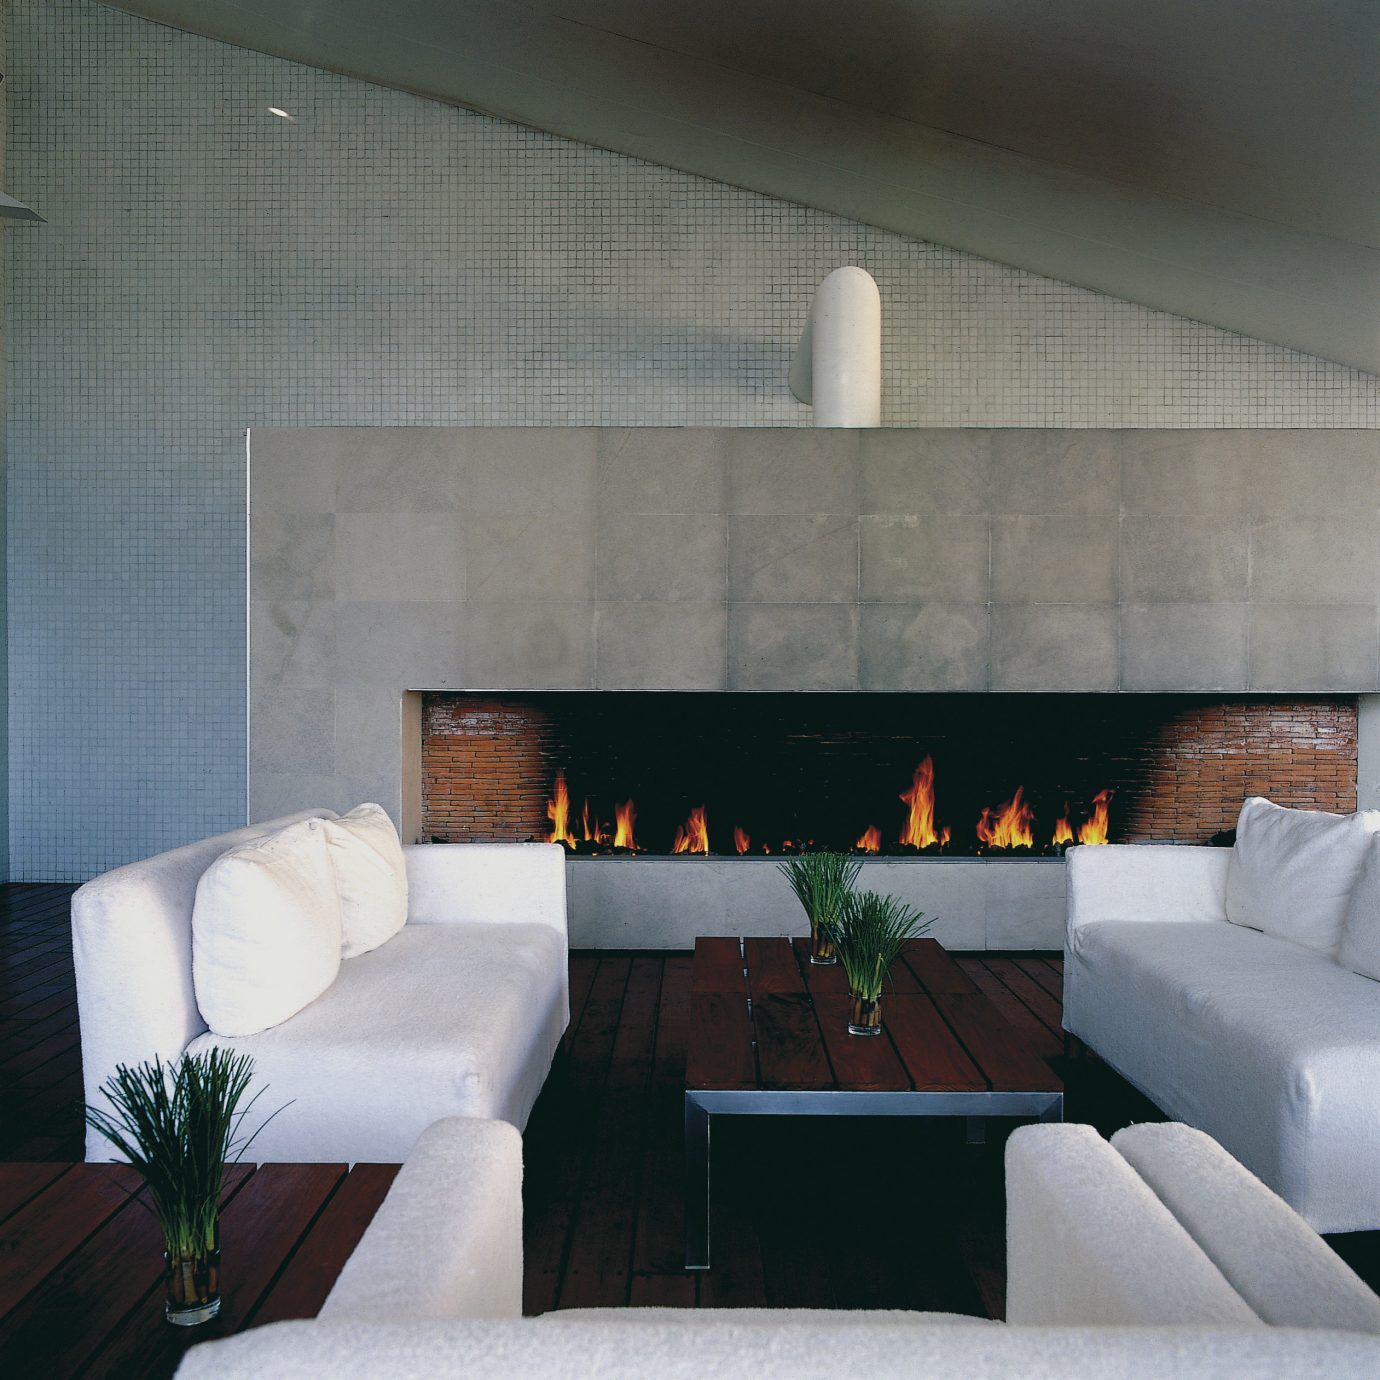 sofa living room property hearth Fireplace white lighting home Modern